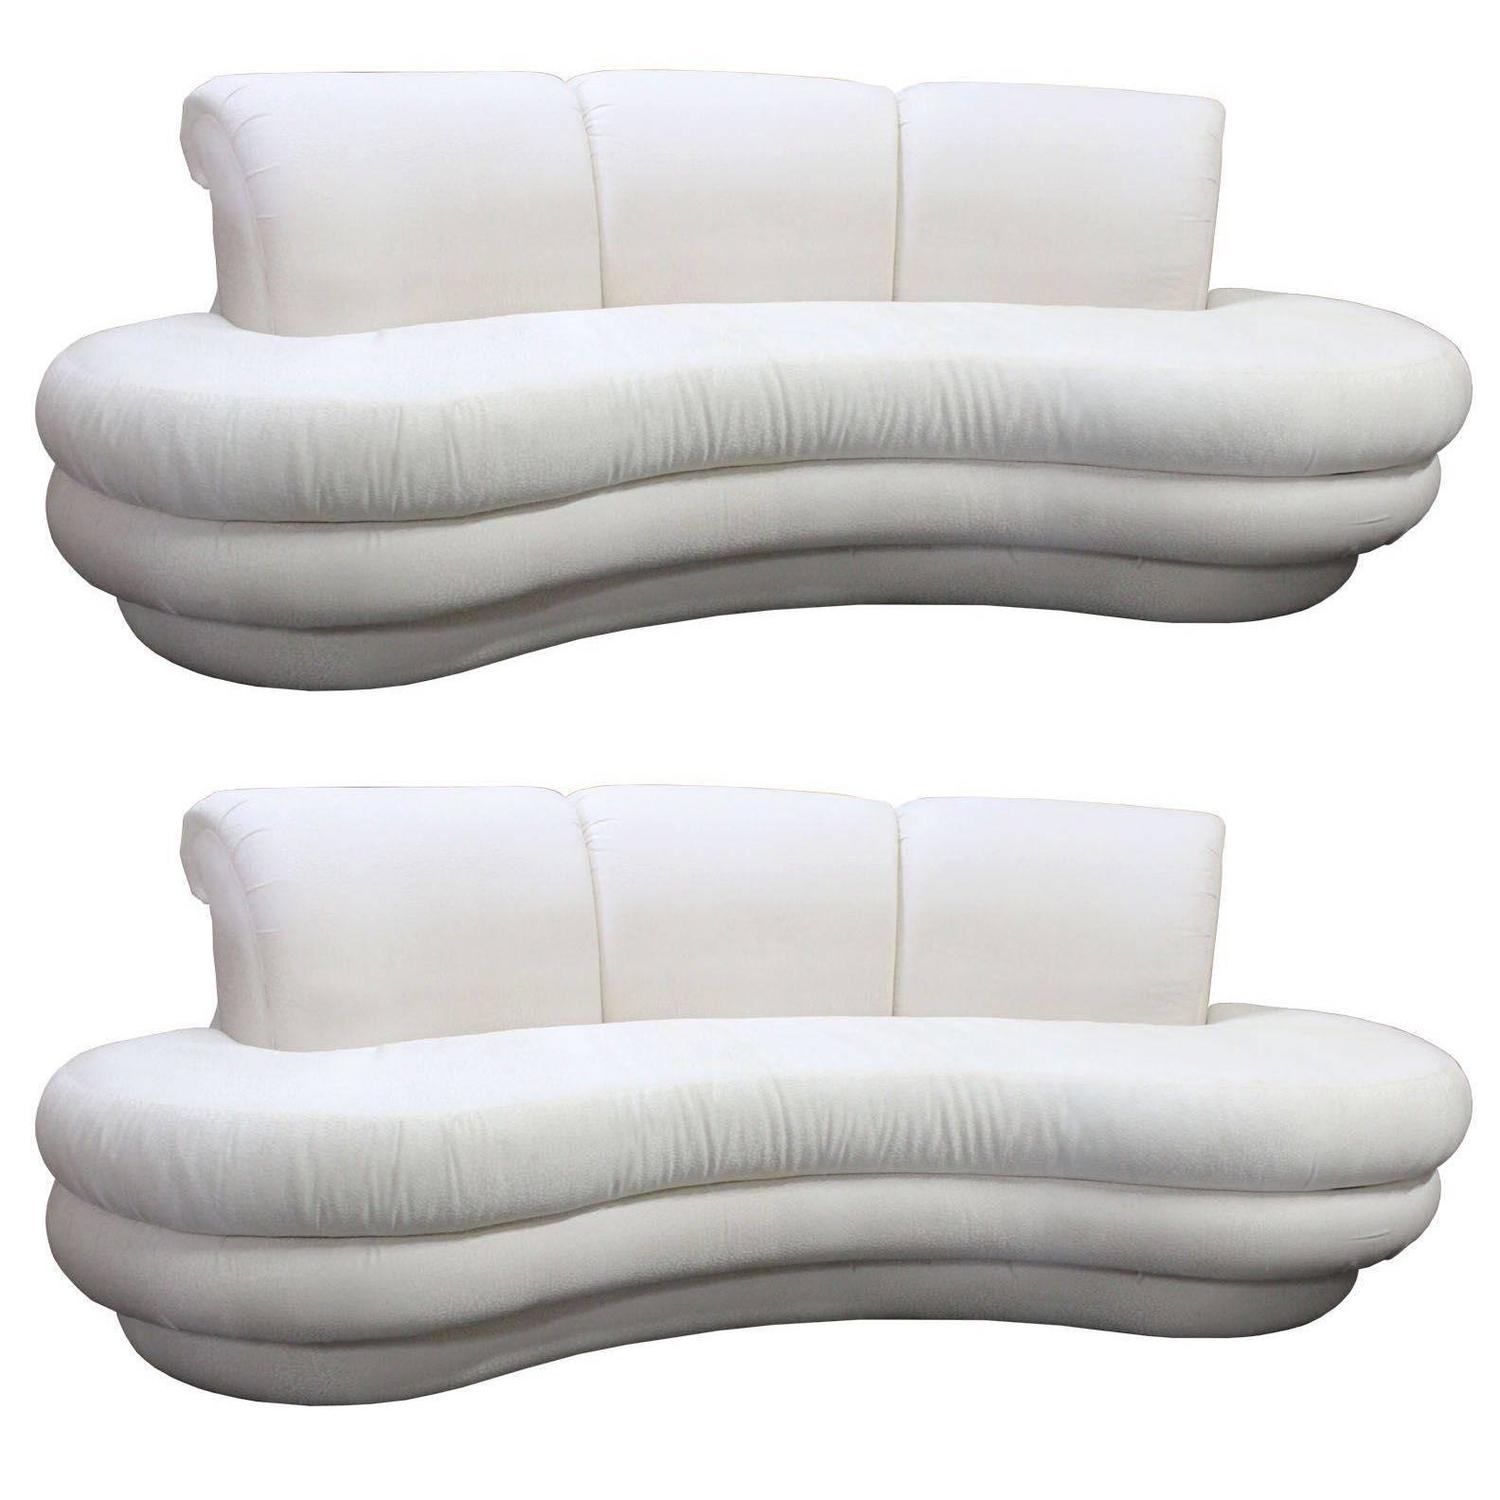 Pair or Single Vintage Adrian Pearsall Kidney Cloud Curved Sofas